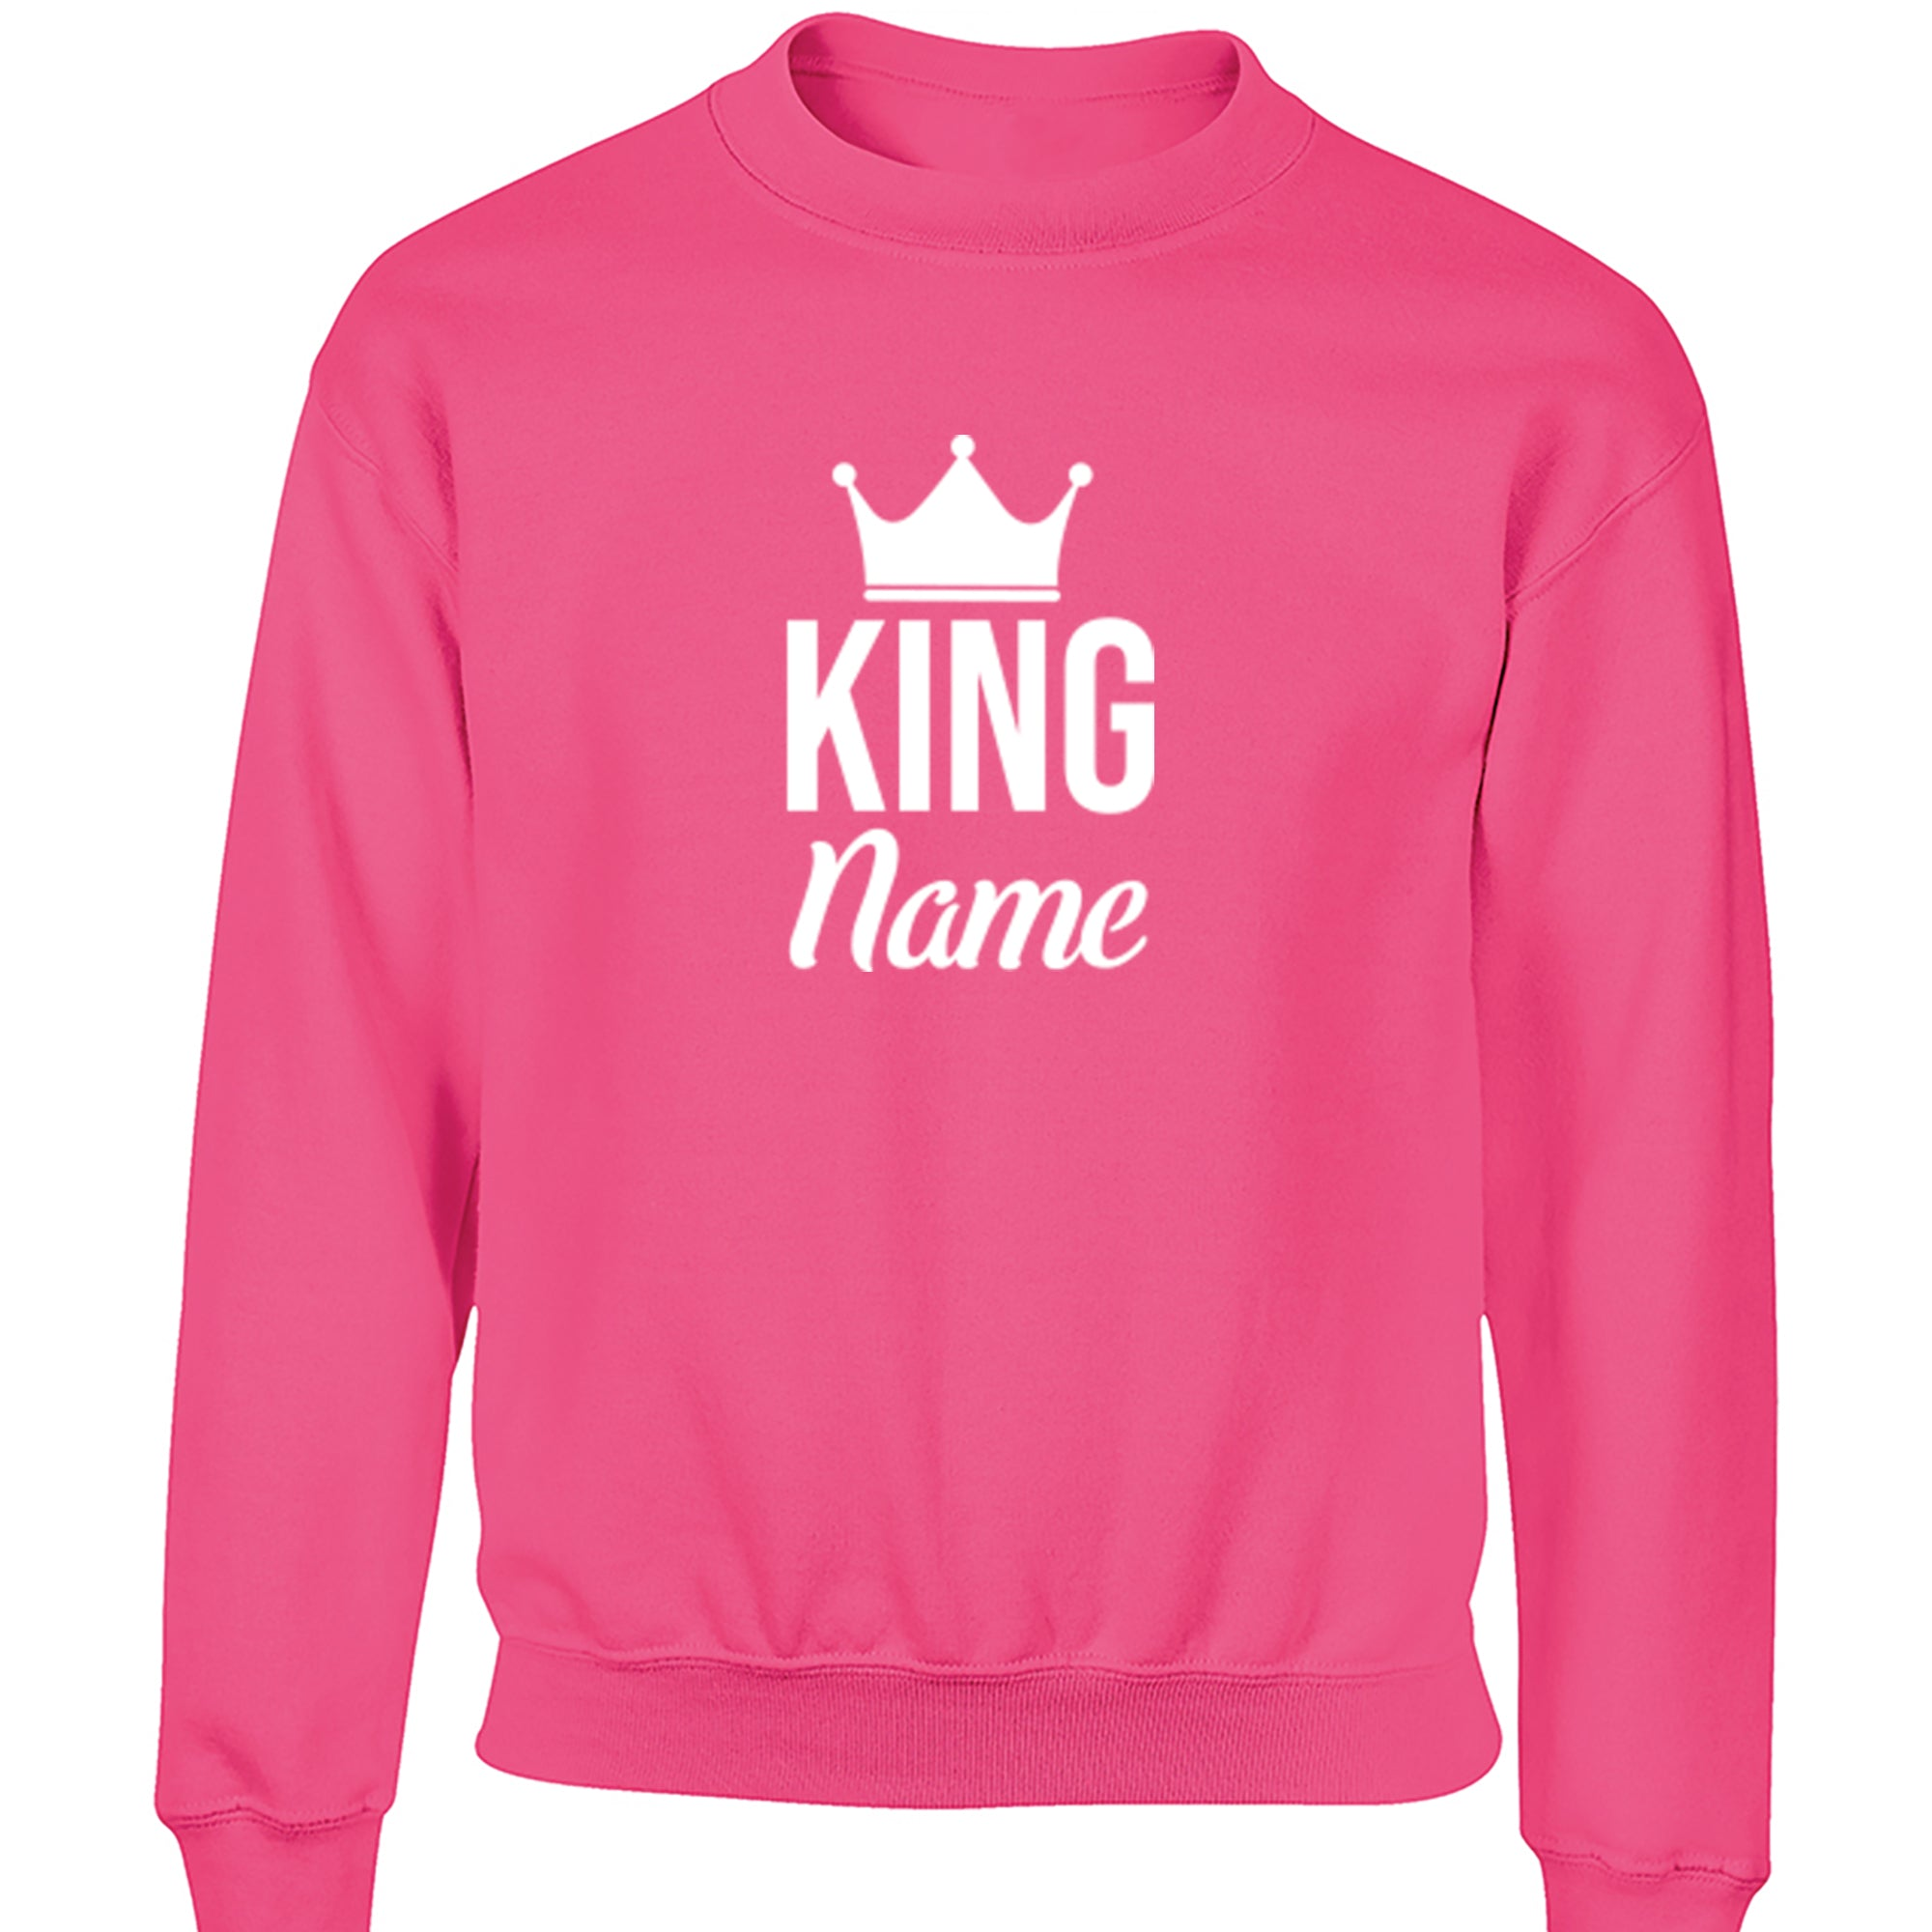 Personalised King Design Childrens Ages 3/4-12/14 Unisex Jumper S0466 - Illustrated Identity Ltd.